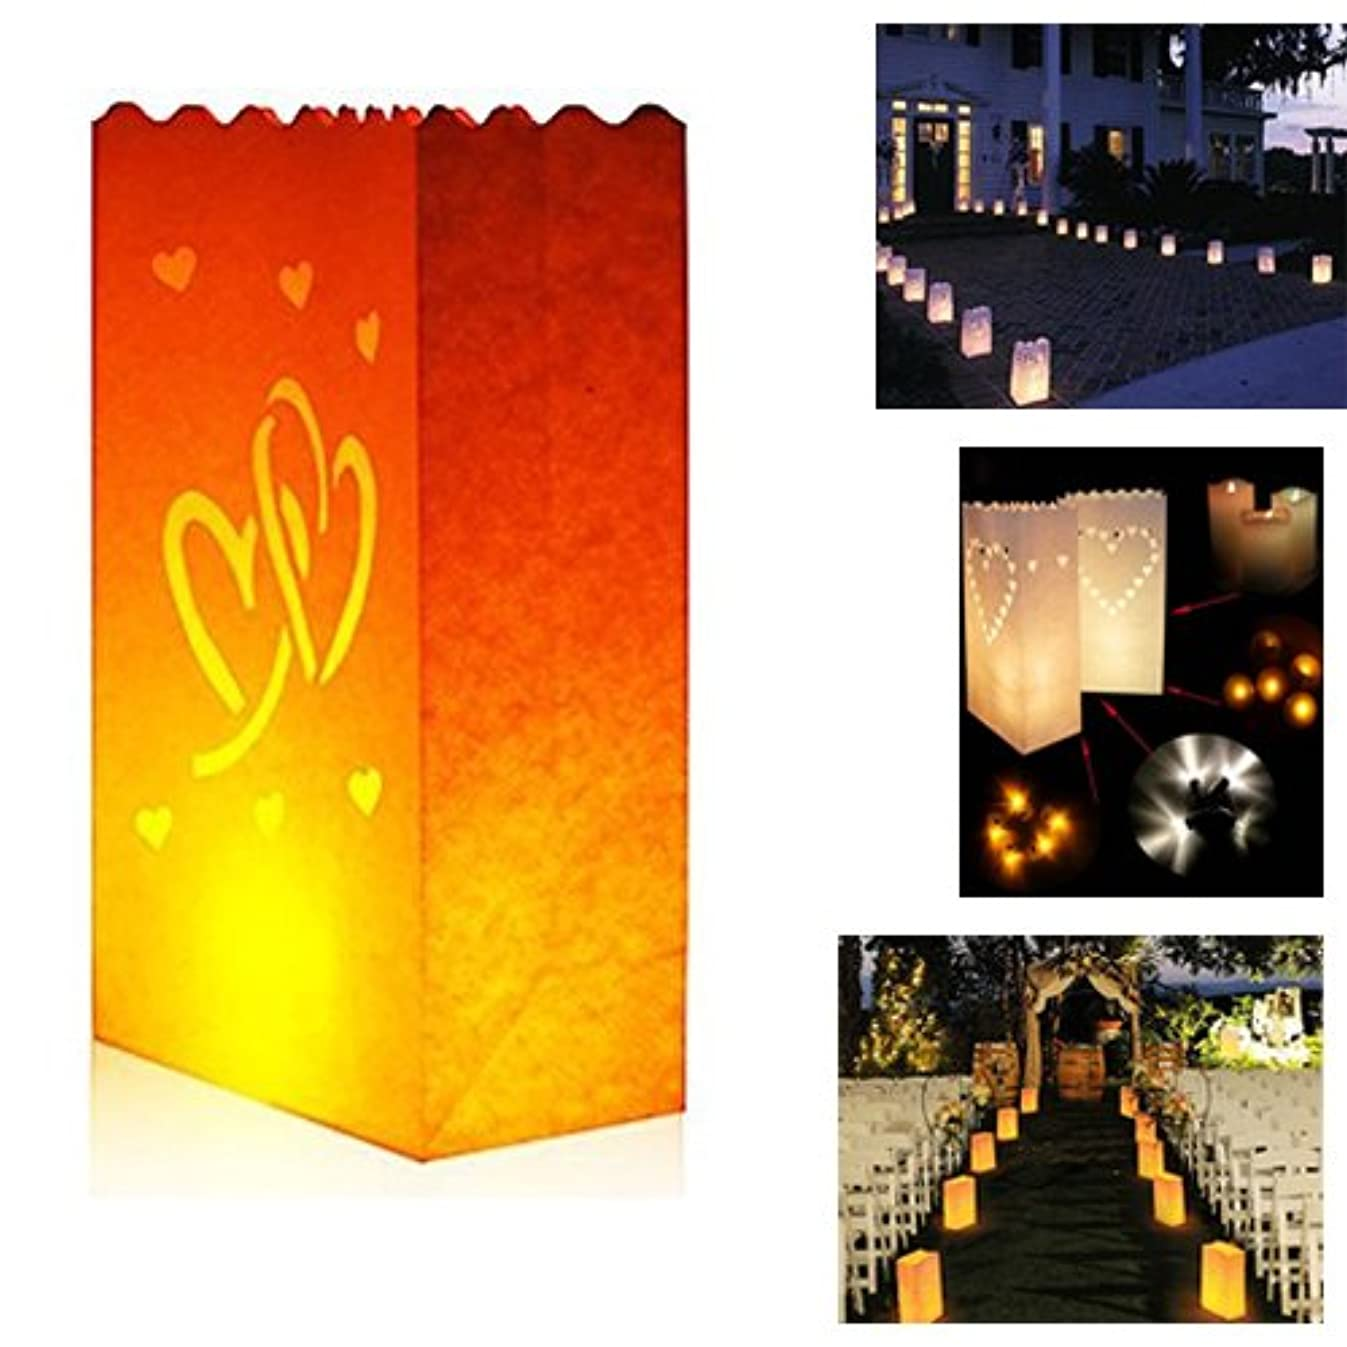 Zaptex Luminary Paper Lantern Candle Tea Light Bag with Flame Resistant Paper for Holiday Wedding Party Decorations (50 Pcs, Double Heart)